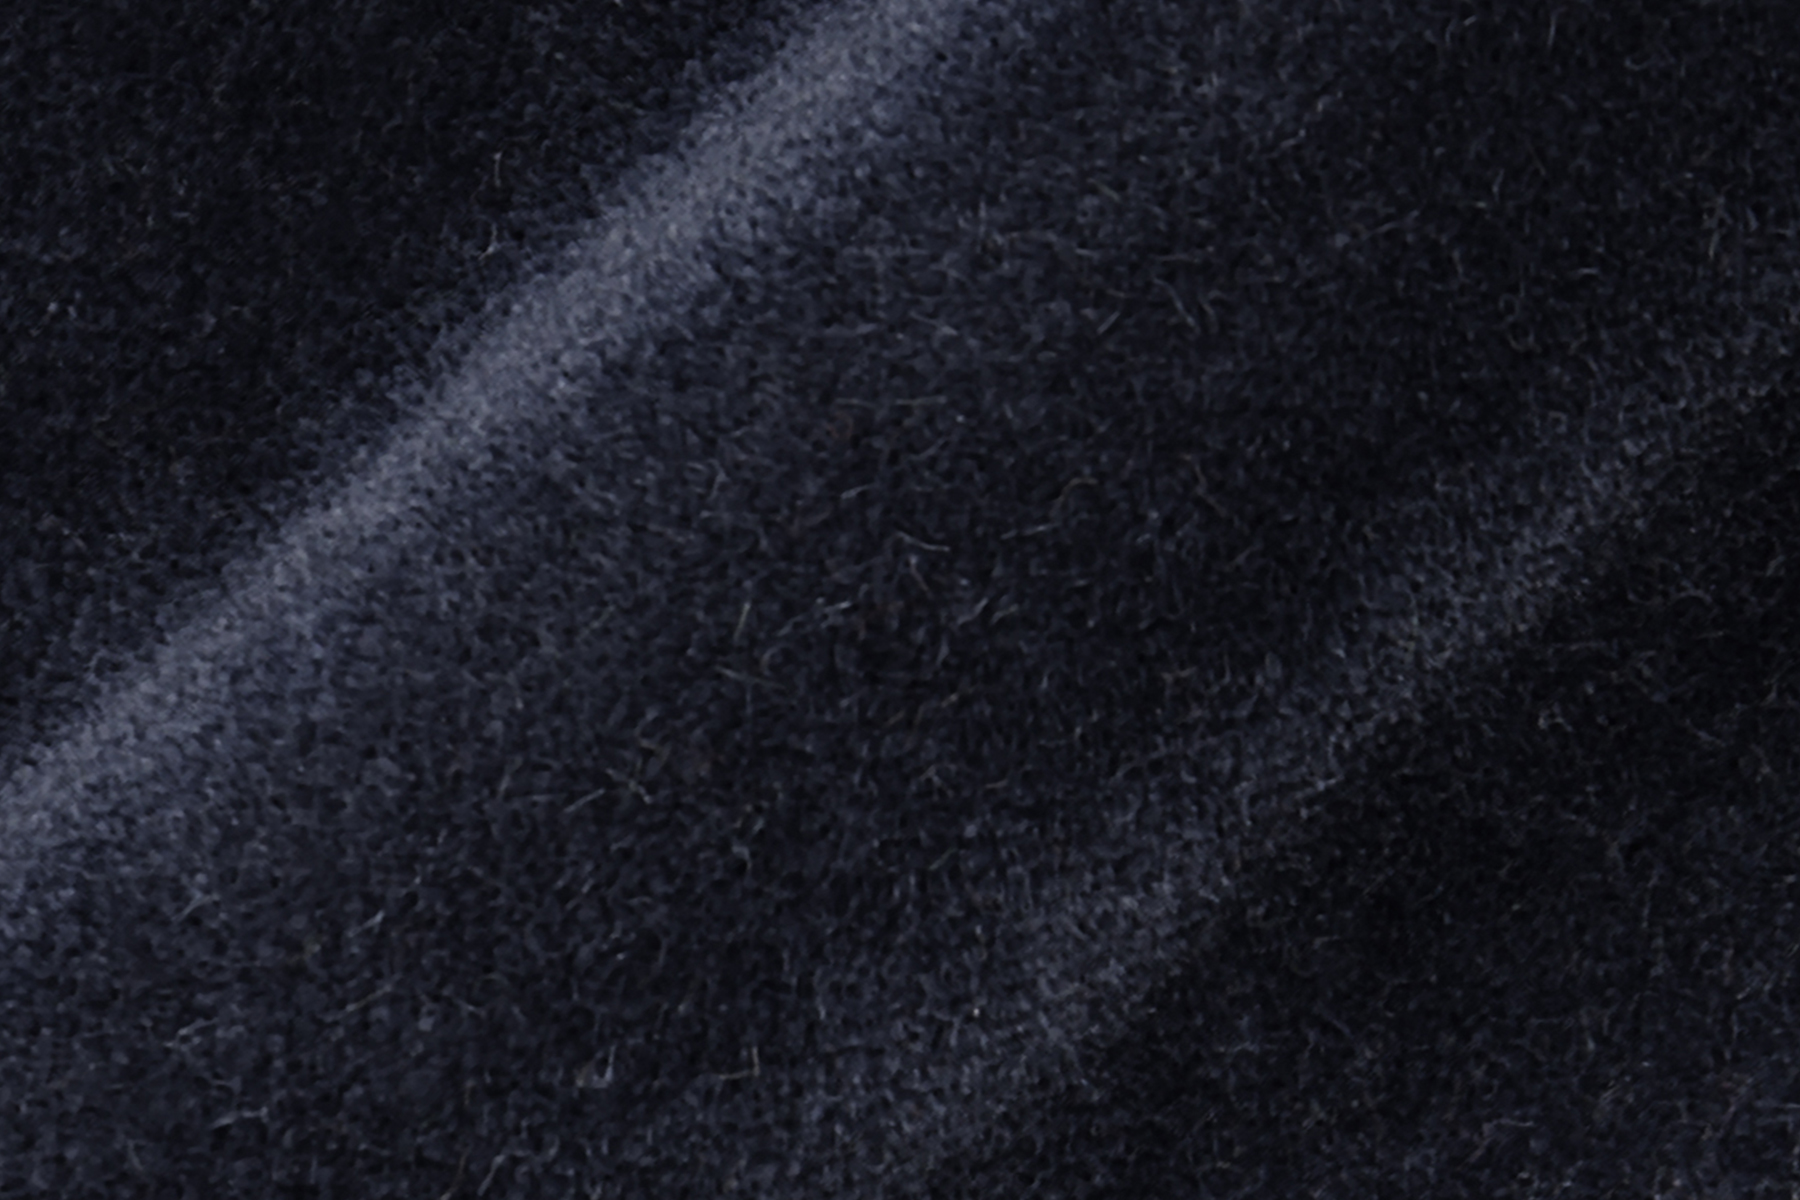 LUX VELVET 0894 COBALT BLUE Fabric by KOKET